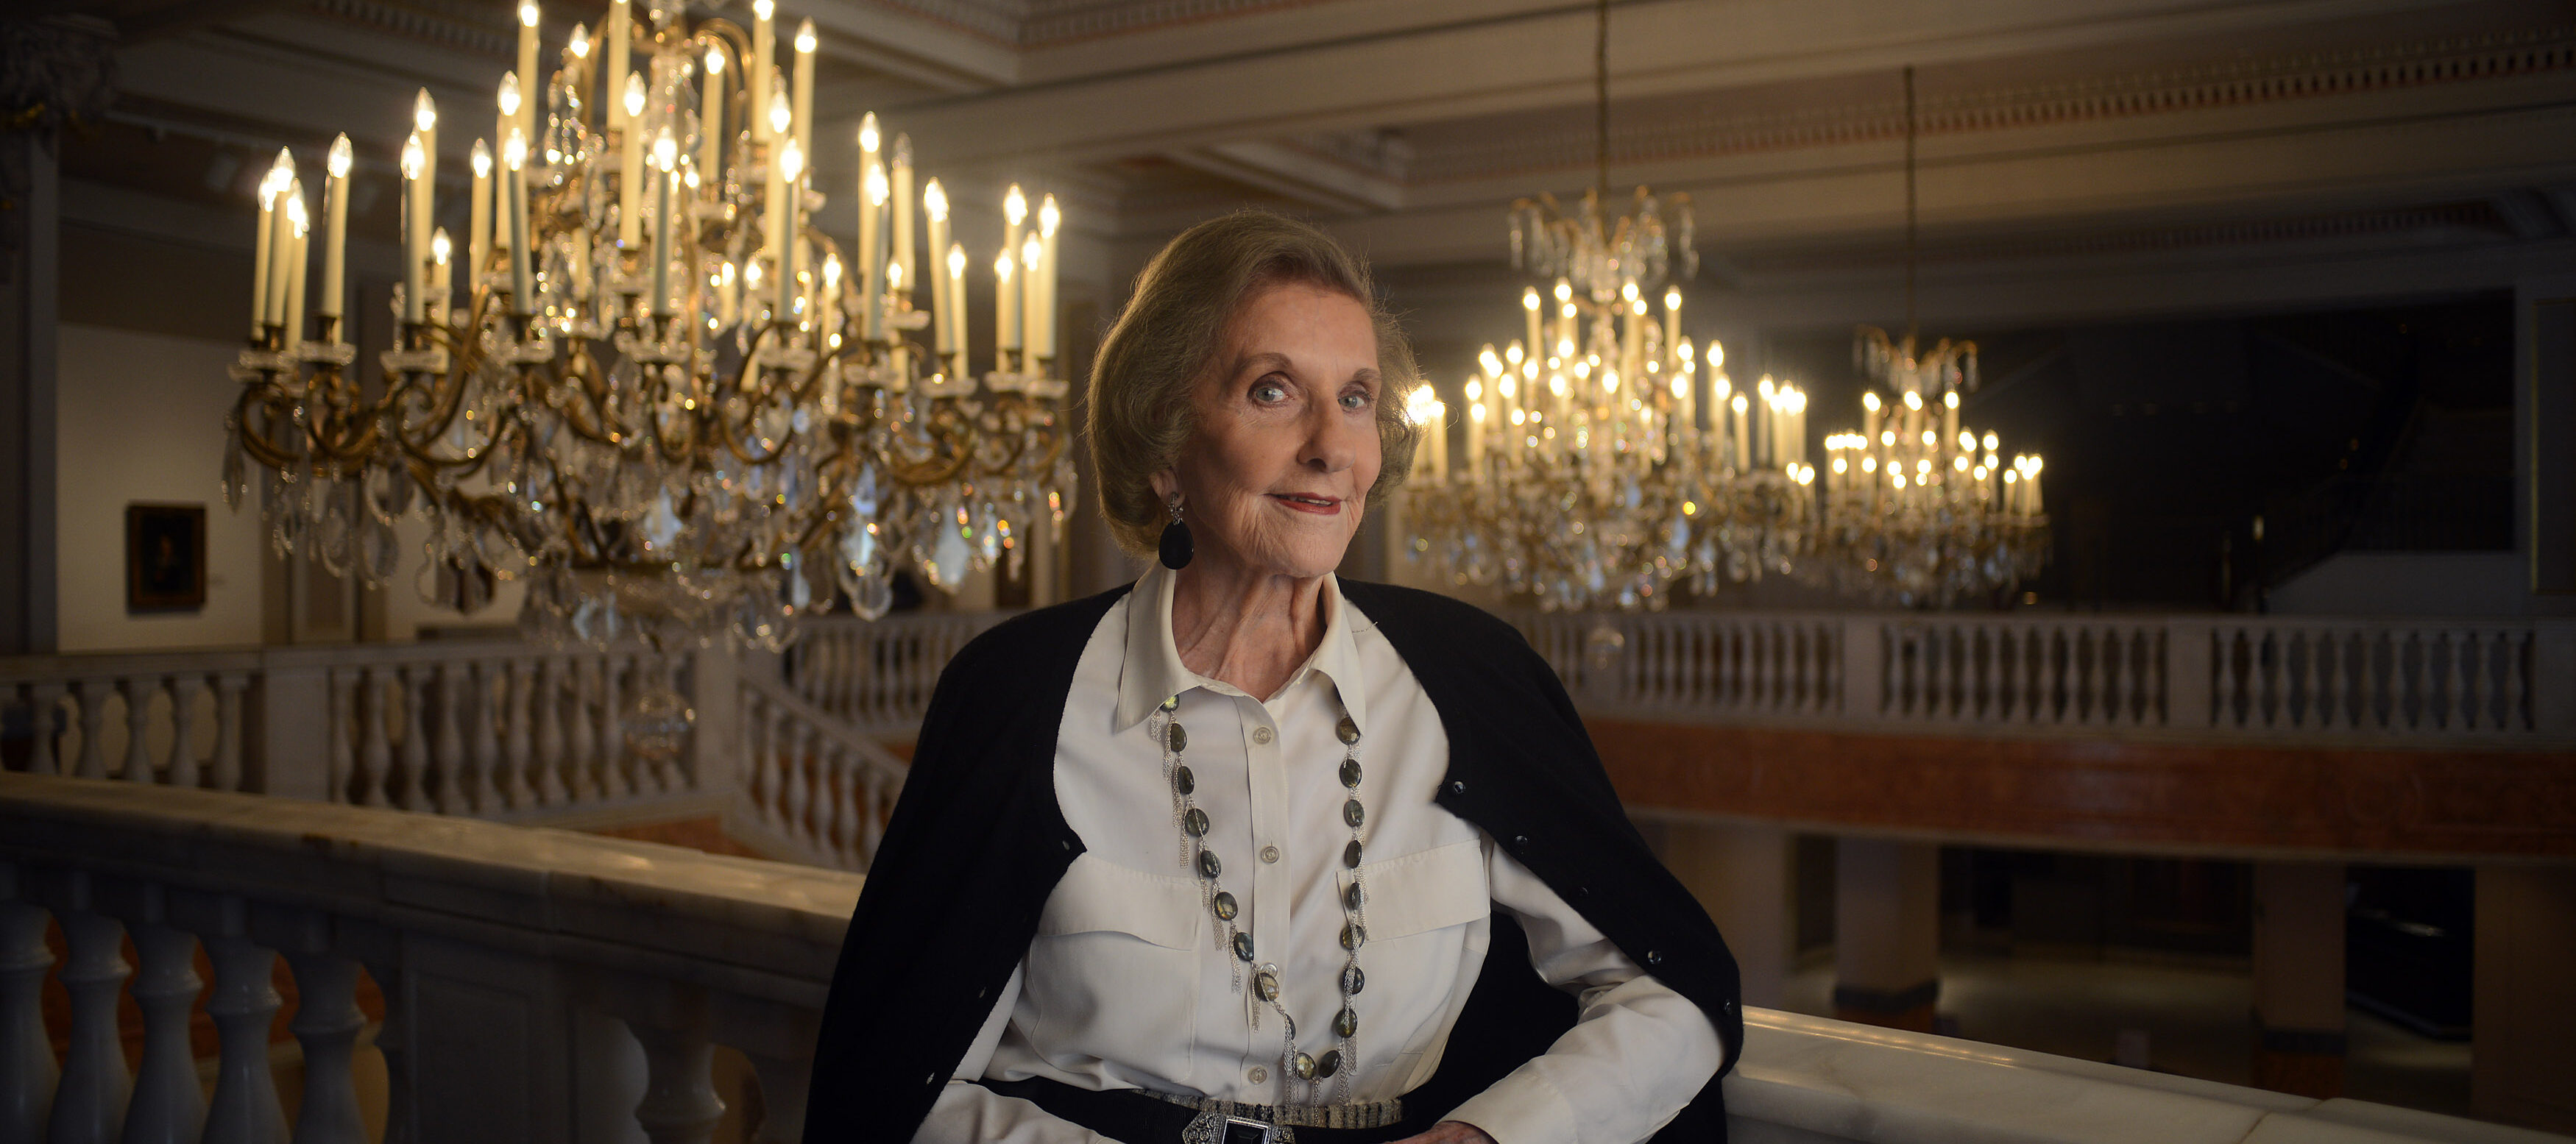 A light-skinned older woman in a collared white shirt and black cardigan leans against a railing with a slight smile. Ornate chandeliers can be seen behind her.